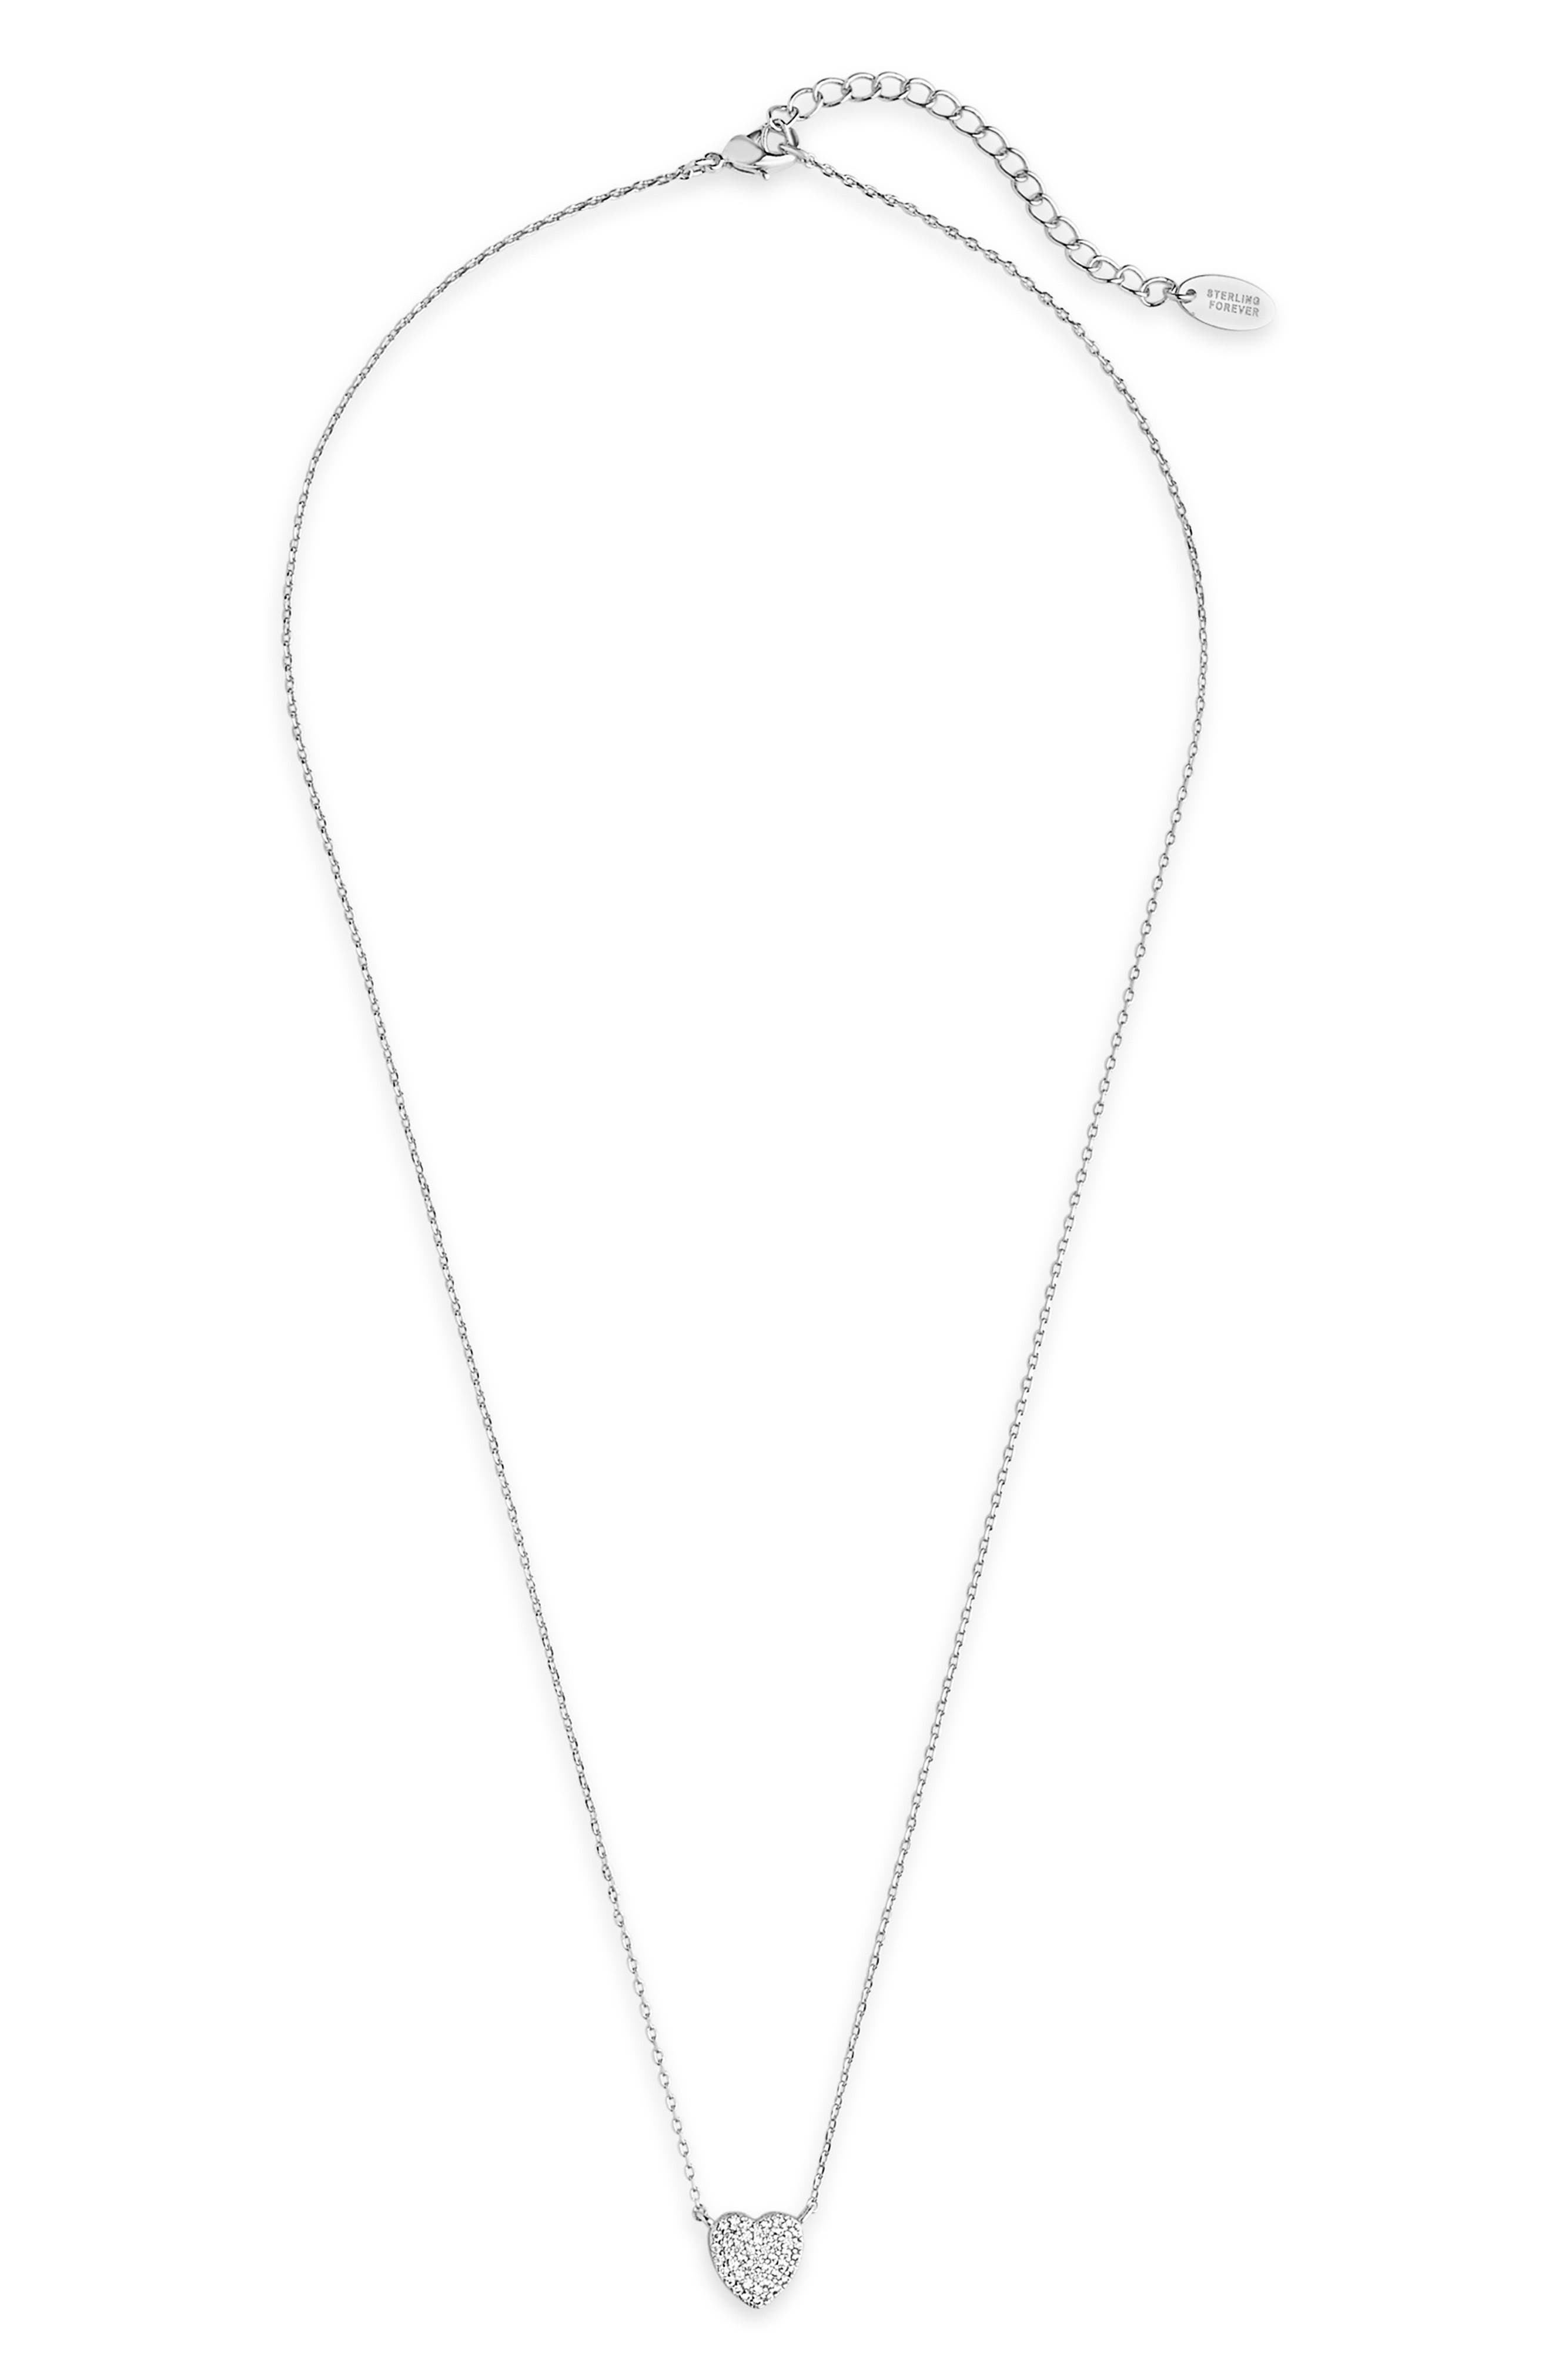 Cubic zirconia twinkle inside the heart pendant suspended from an elegant and dainty chain necklace. Style Name: Sterling Forever Heart Pendant Necklace. Style Number: 6114368. Available in stores.